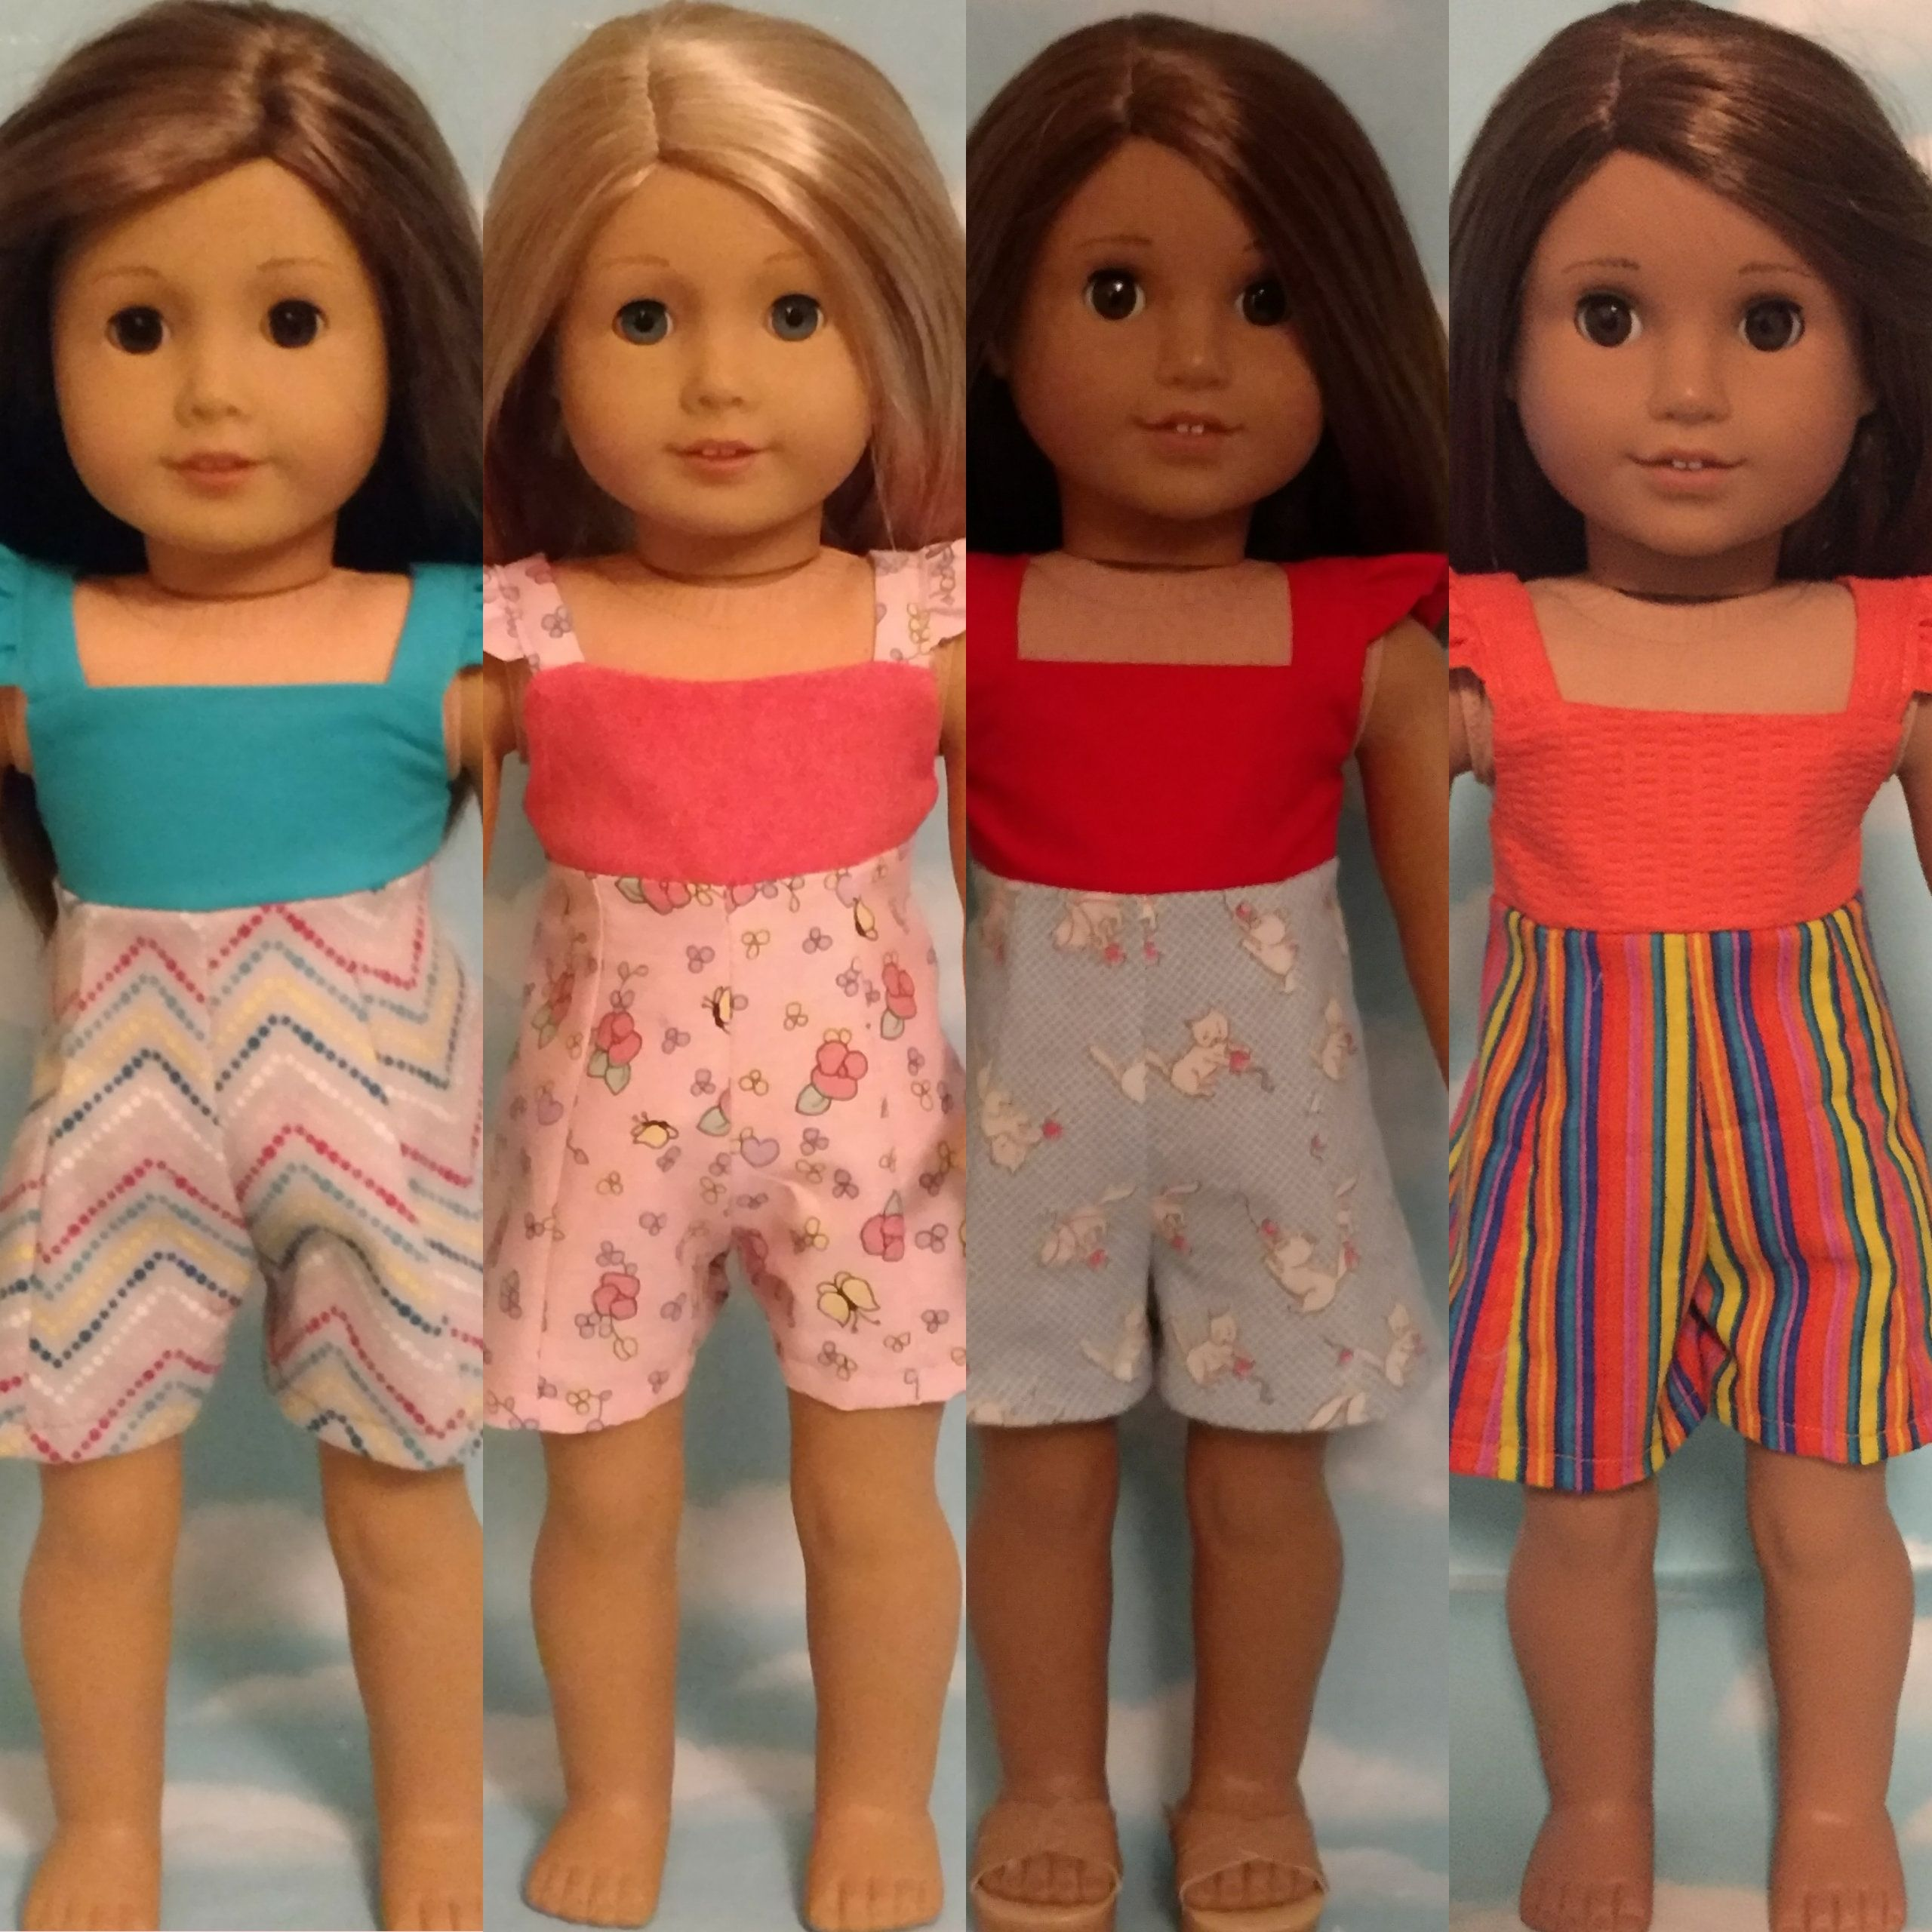 18 inch doll clothes, Jumper fits 18 American Girl Dolls 950abcd #18inchdollsandclothes